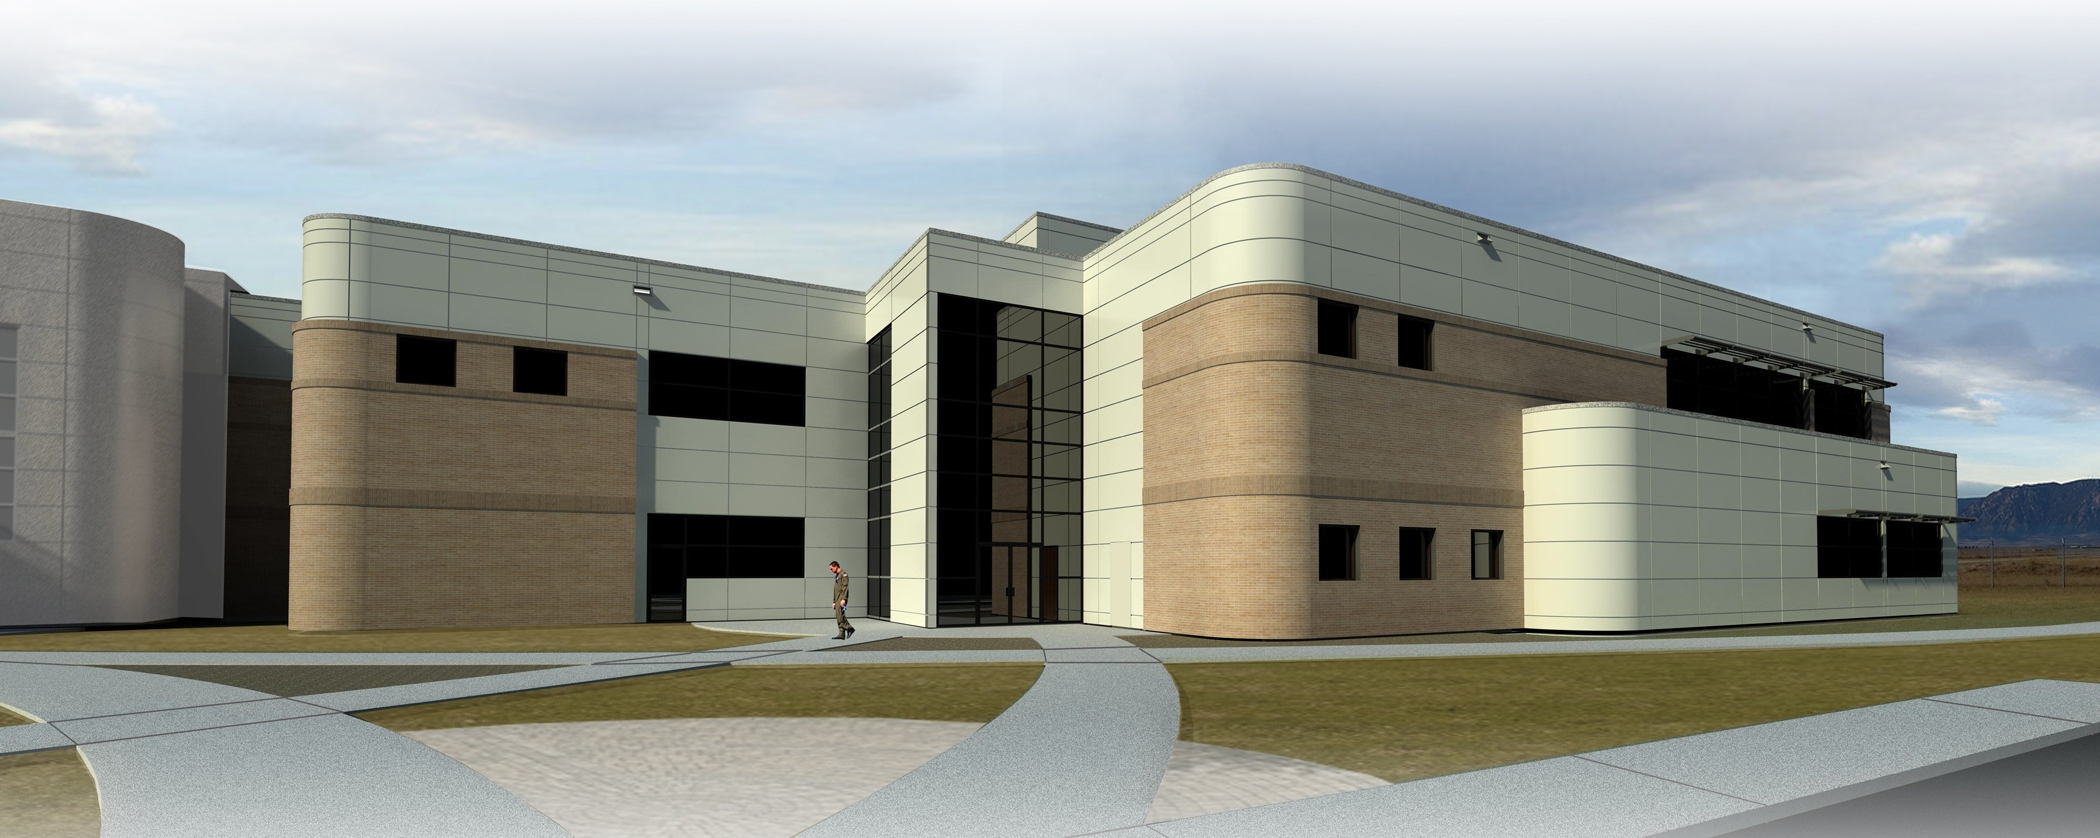 3D View - North East Exterior.jpg